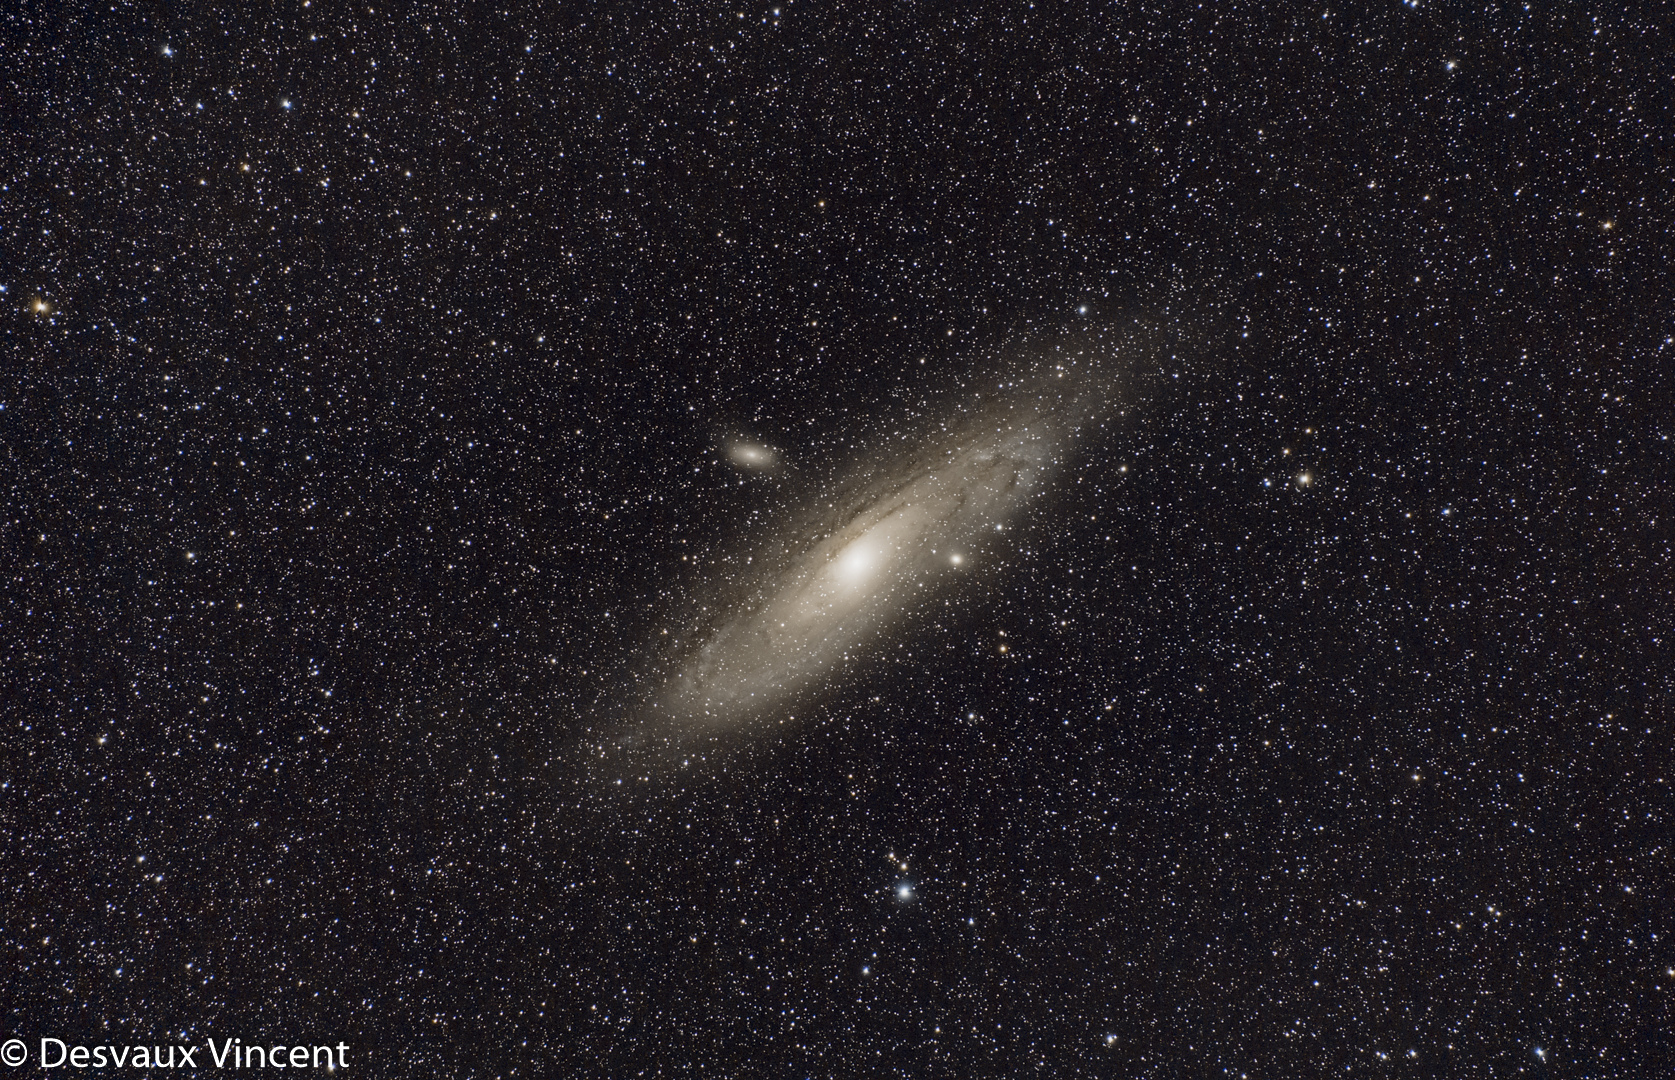 m31-124x60sec-3200iso-6d-70-300is-stm-300mm-f56-08-09-2019-ter-1080p.jpg